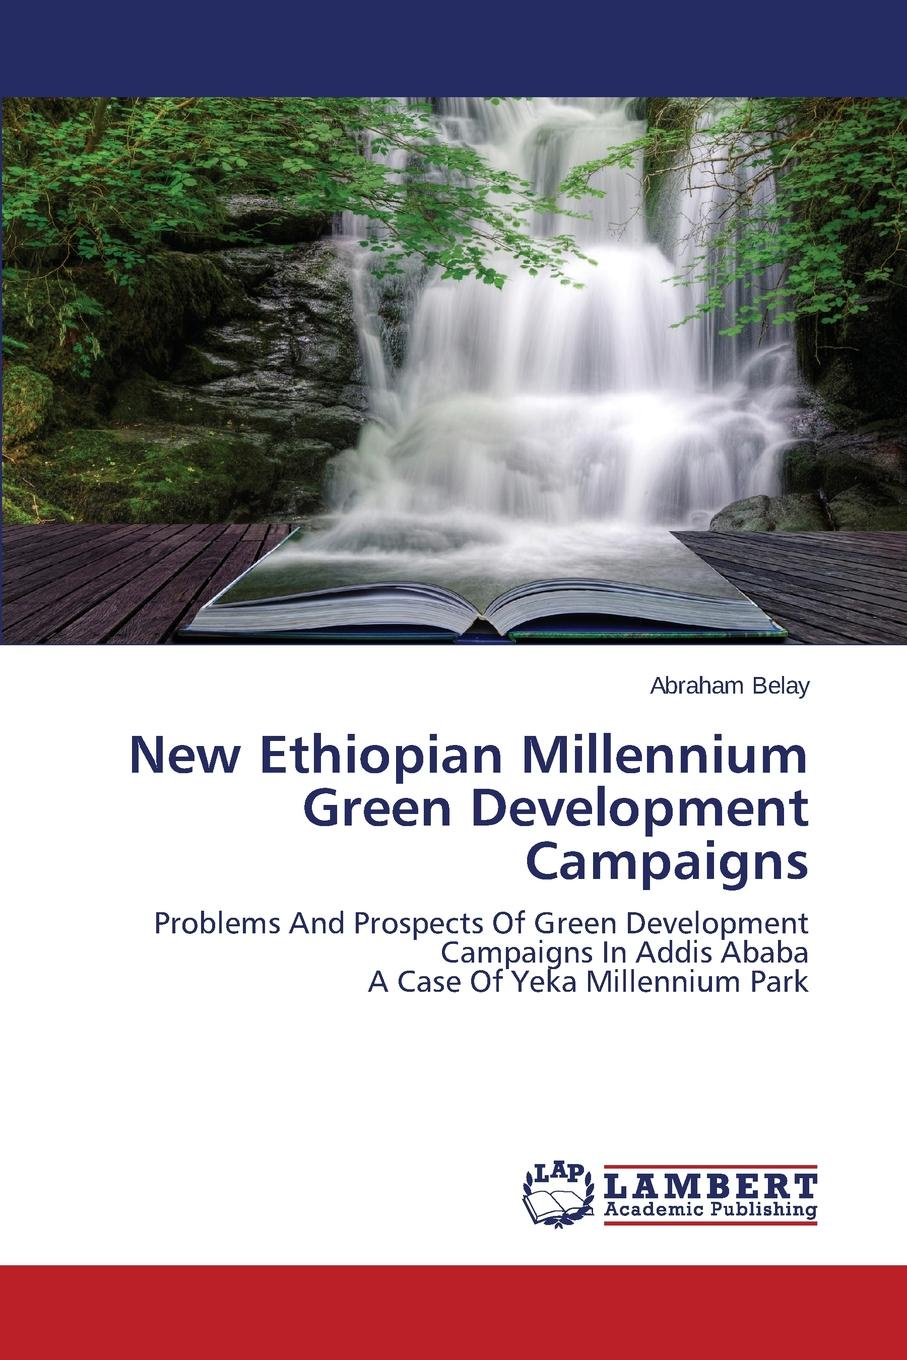 купить Belay Abraham New Ethiopian Millennium Green Development Campaigns онлайн